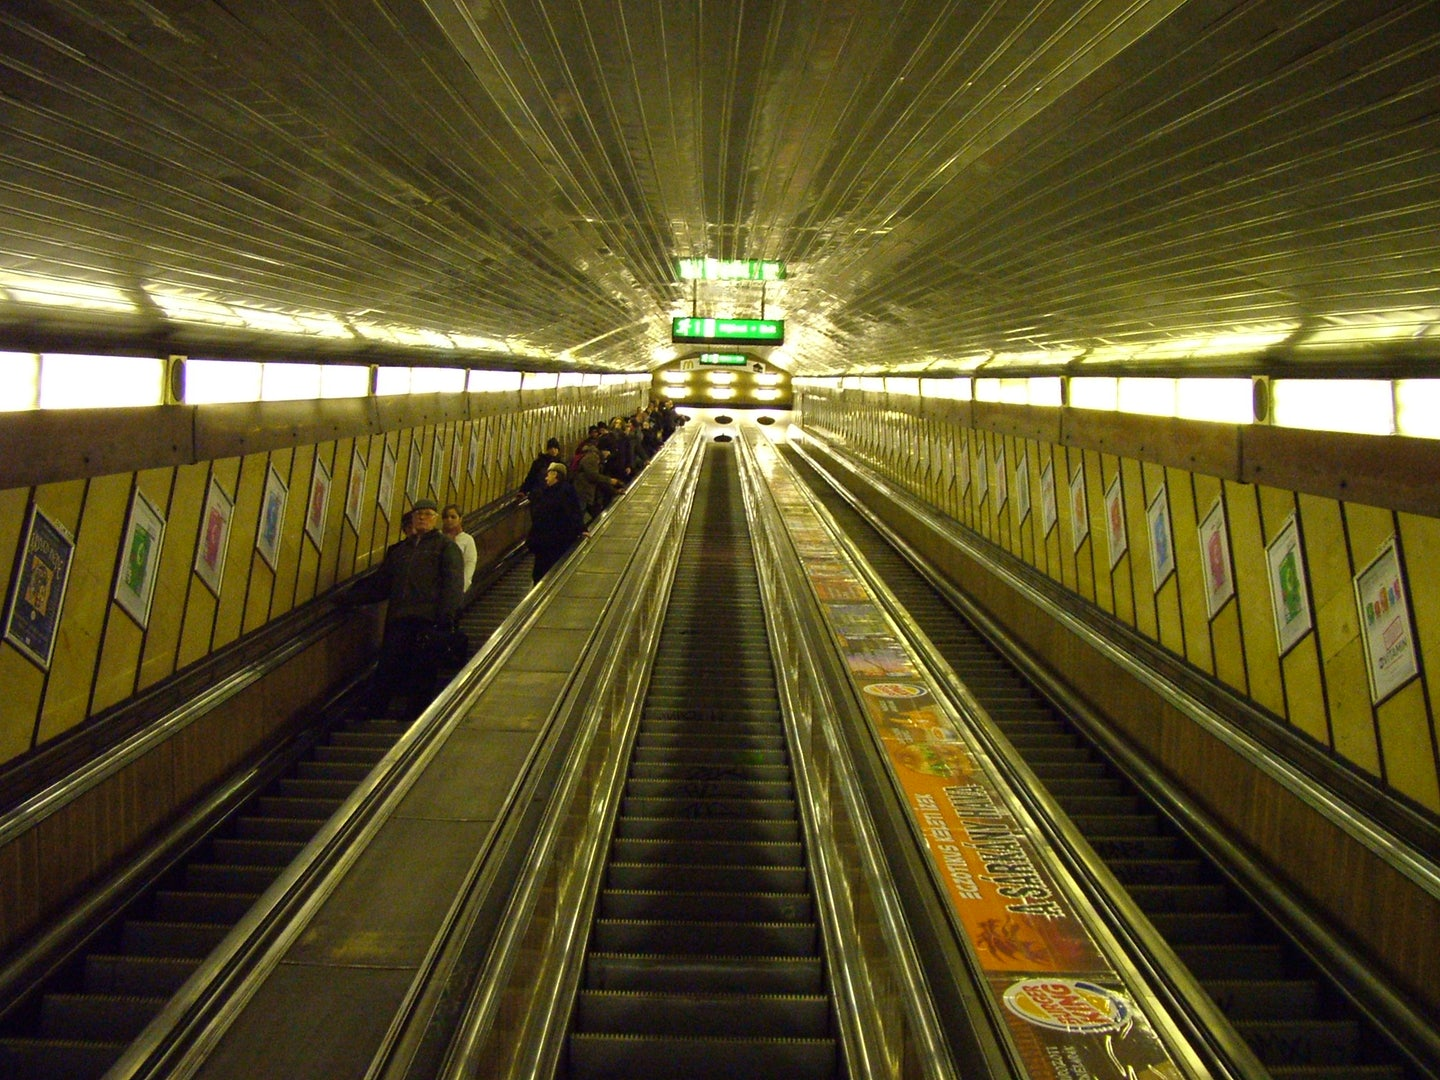 Escalator at Deak Ferec Ter station